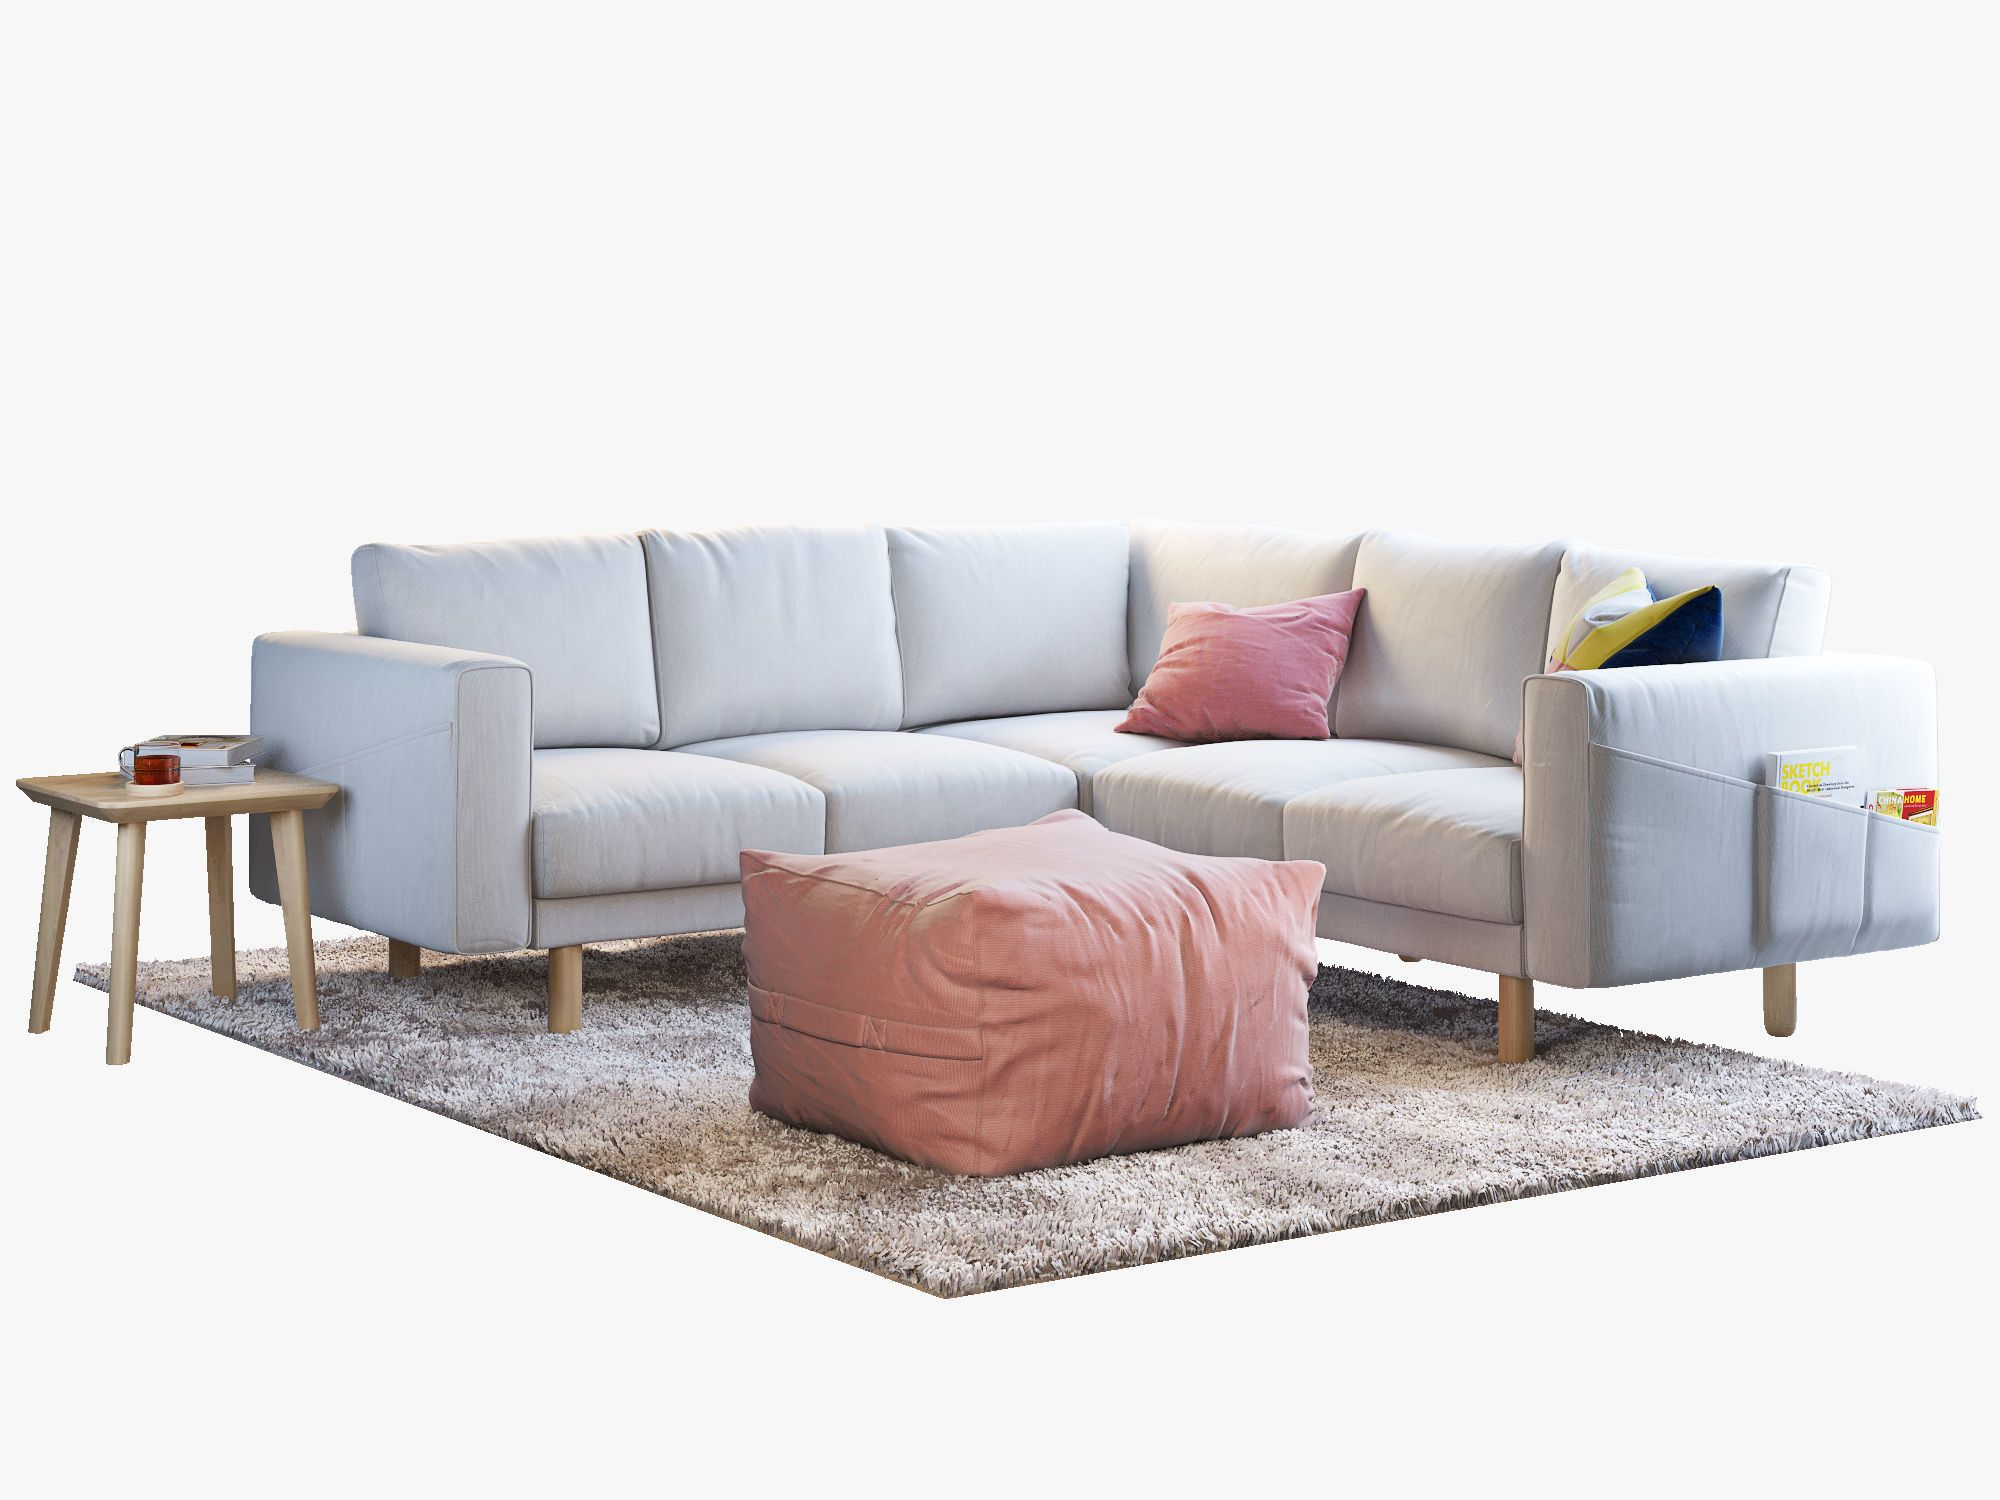 Fourseat corner sofa with coffee tables and rug